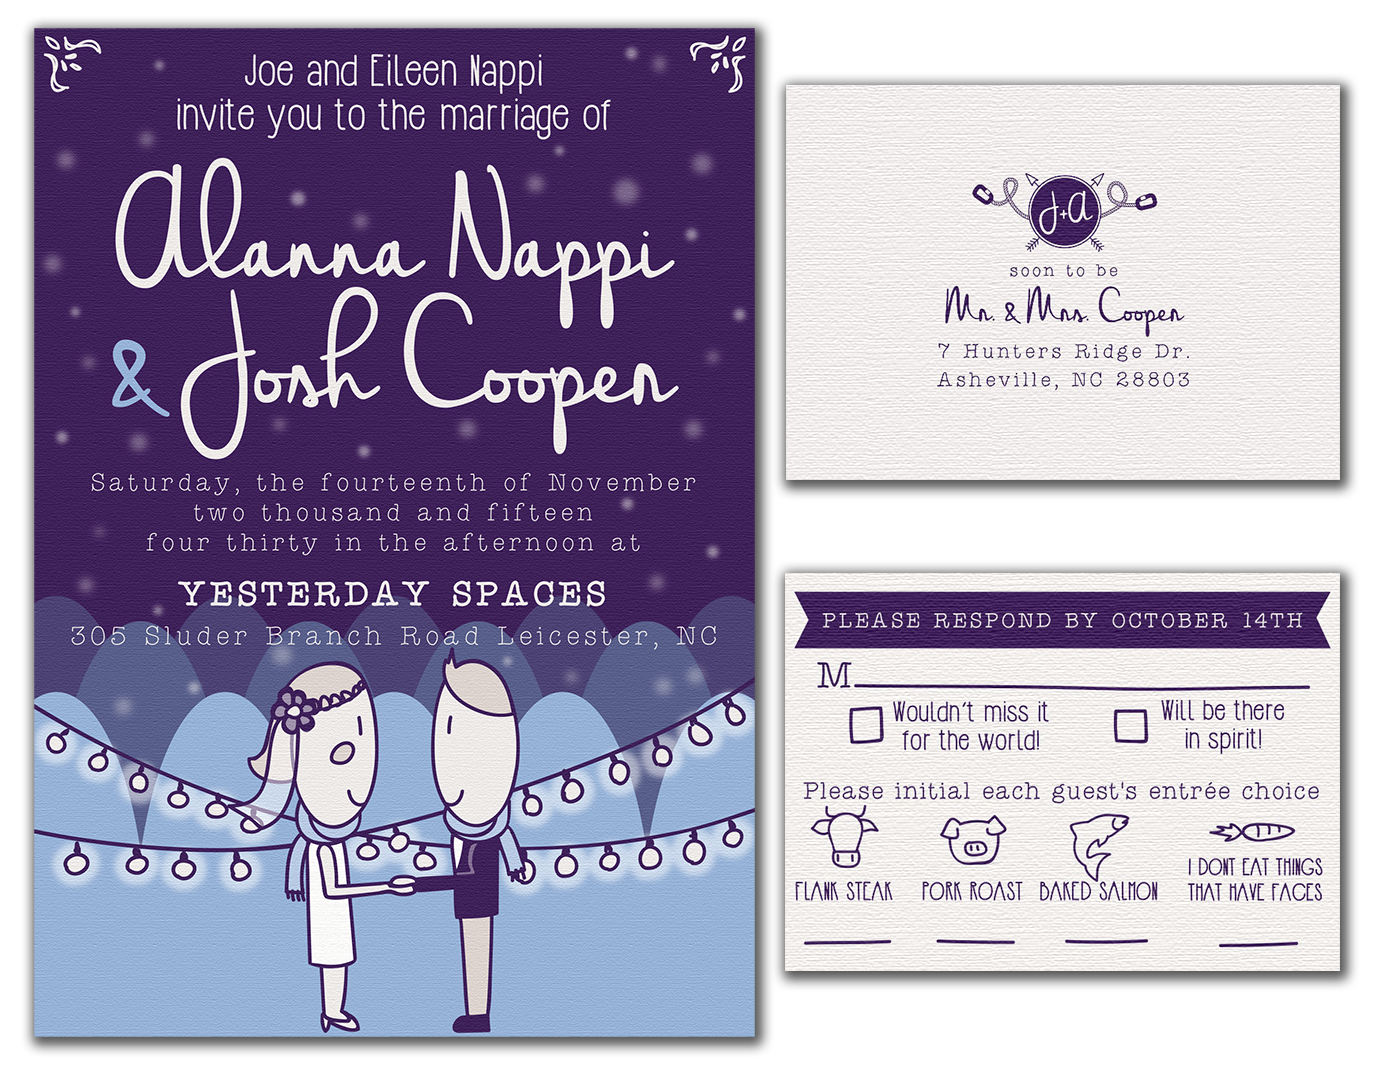 Cooper-Nappi Wedding Invite